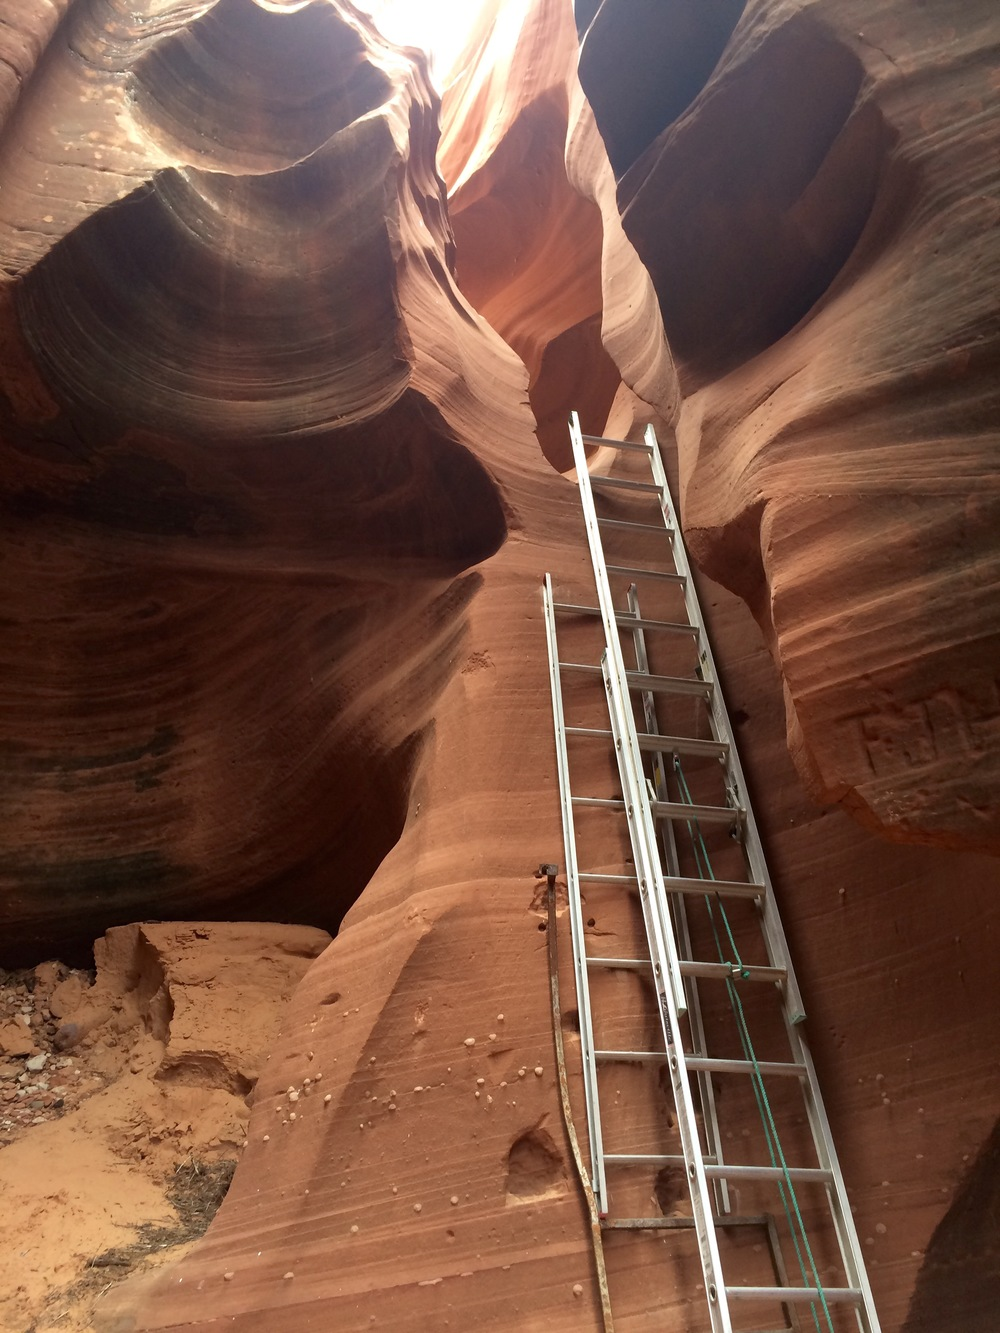 slot canyon ladders.  photo by K. Strong.